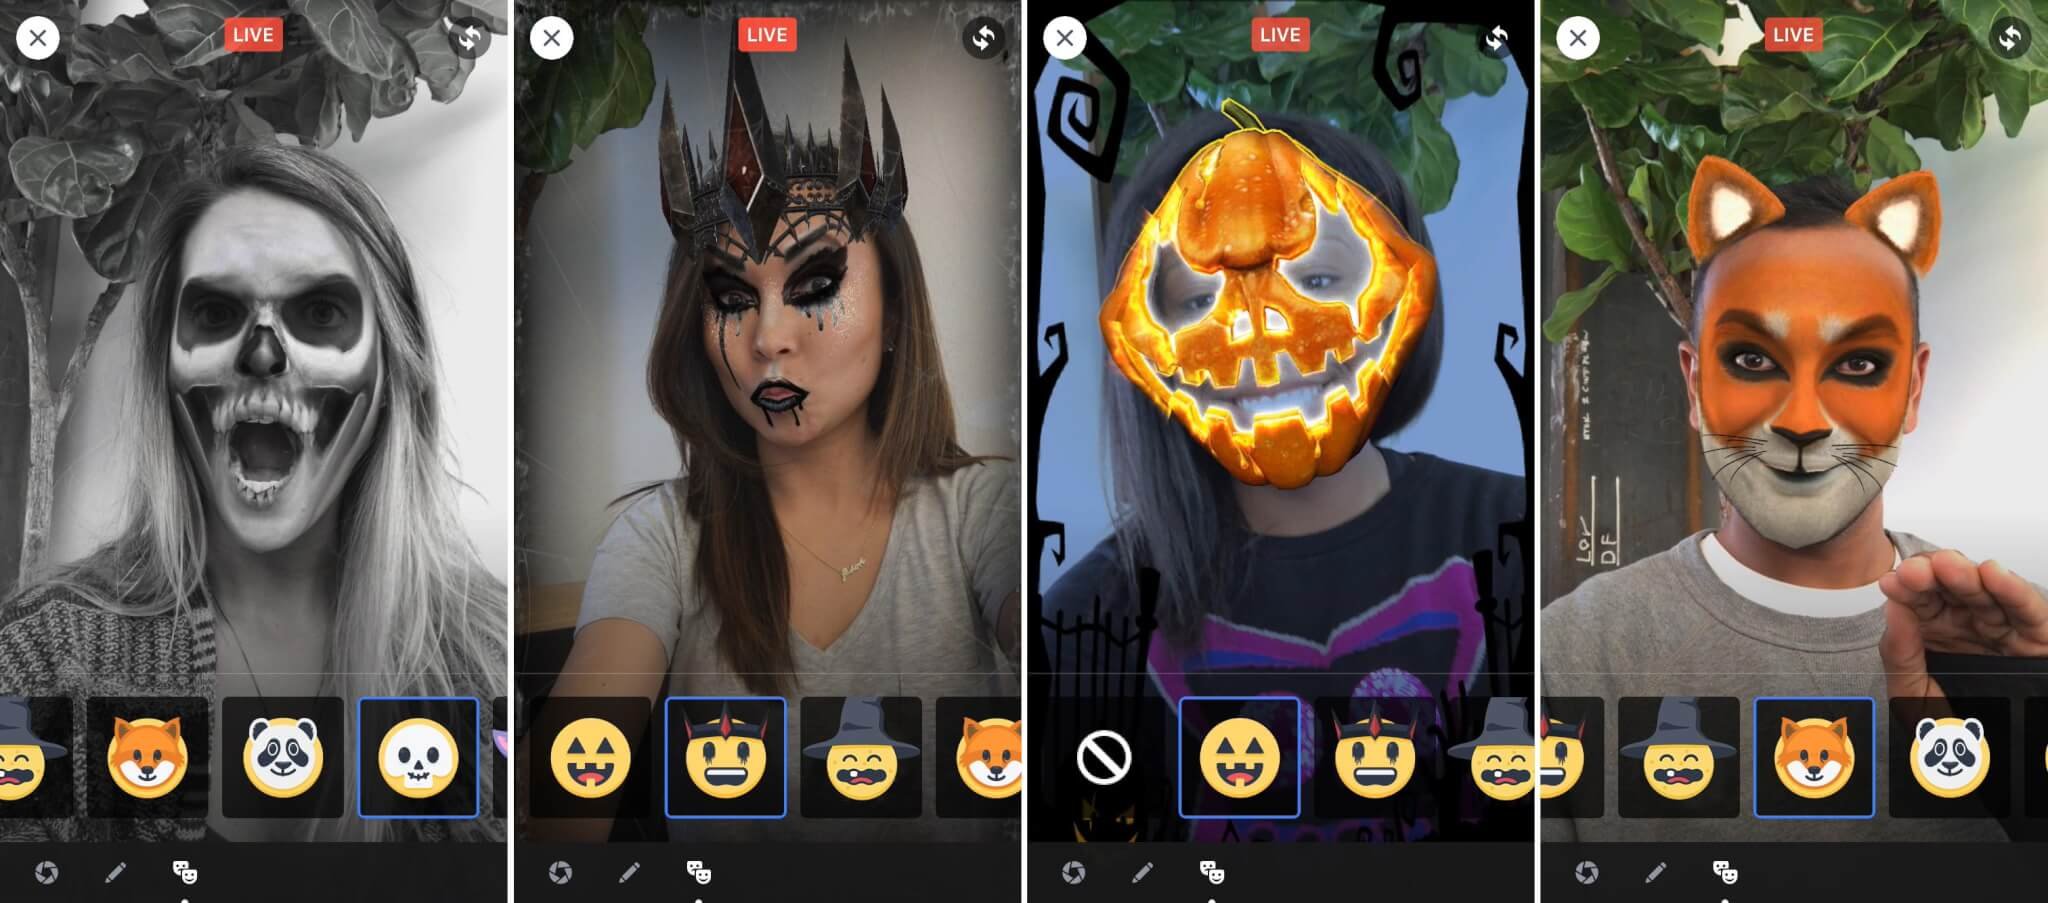 Examples of Snapchat-like lenses for Halloween that can be affixed to Facebook Live broadcasts.